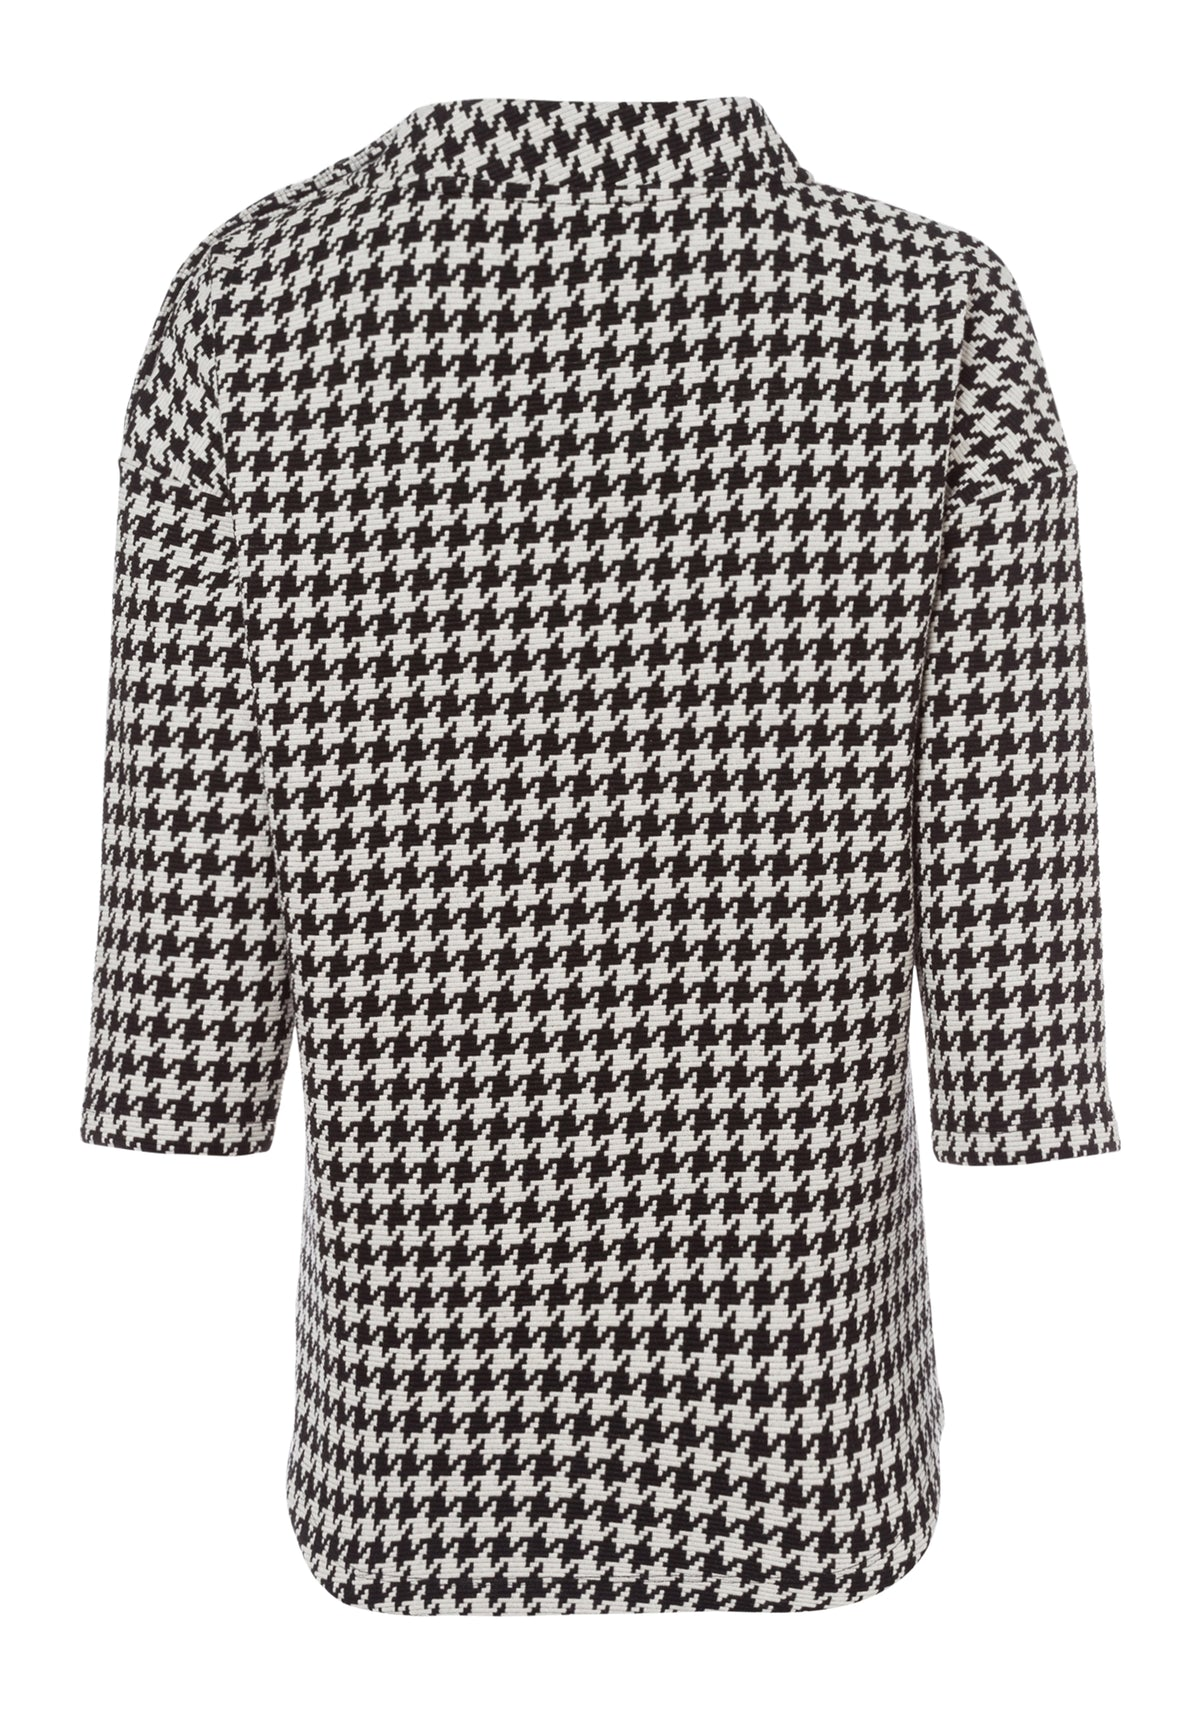 3/4 Sleeve Houndstooth Jersey Knit Top with Functional Shoulder Buttons